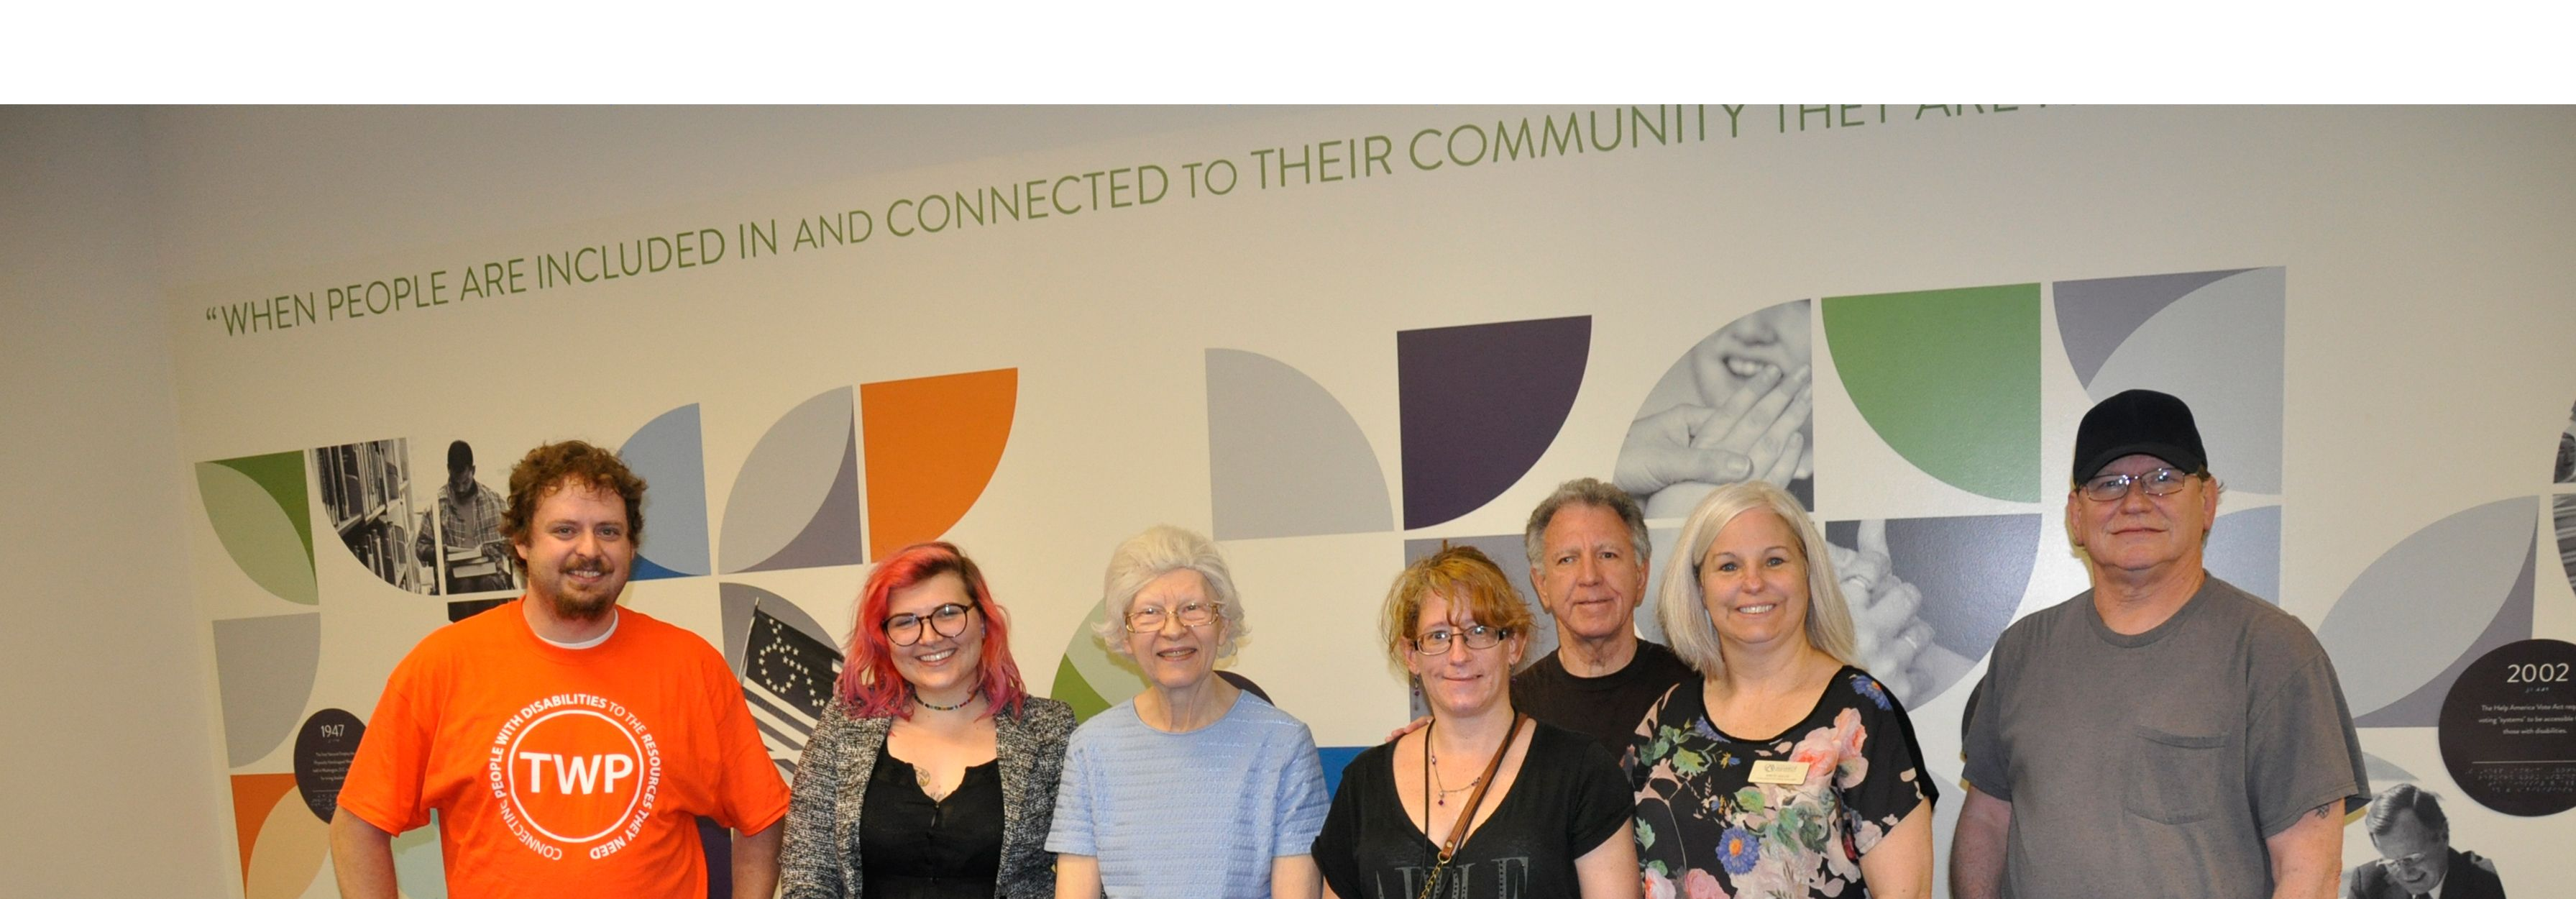 Group shot of Deaf Peer Support group